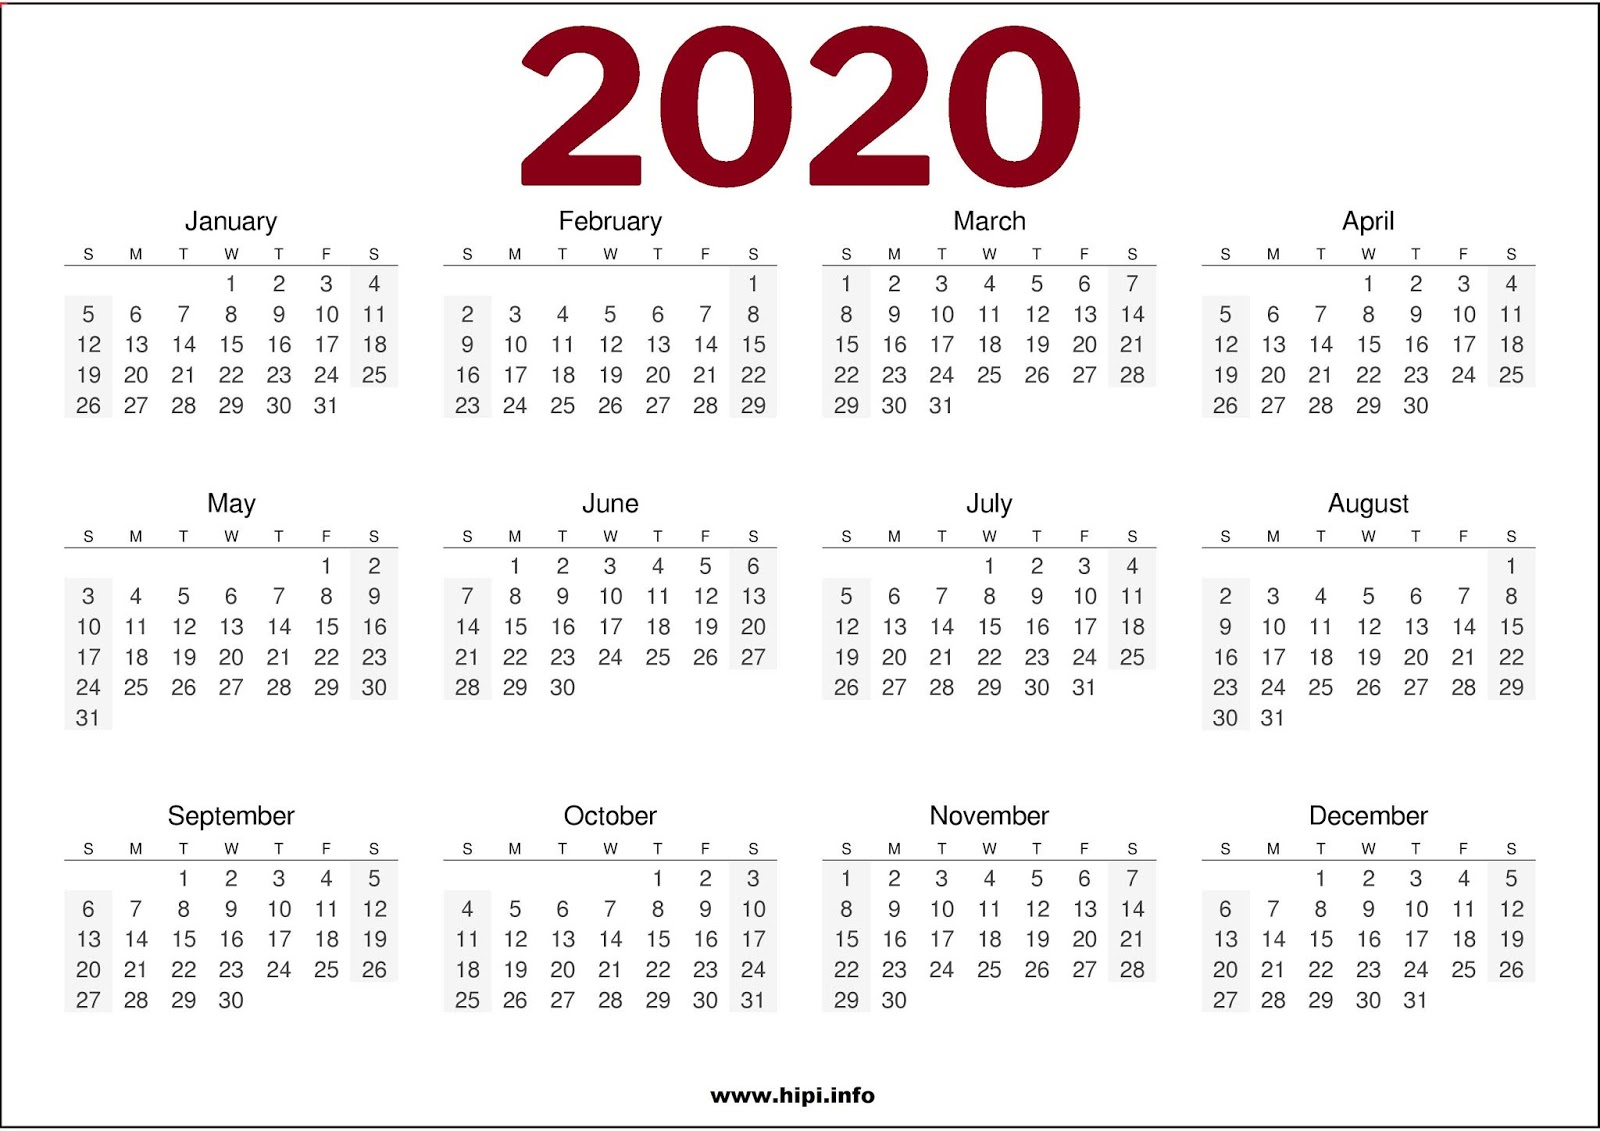 Twitter Headers / Facebook Covers / Wallpapers / Calendars: 2020 intended for 2020 Calendar Printable One Page